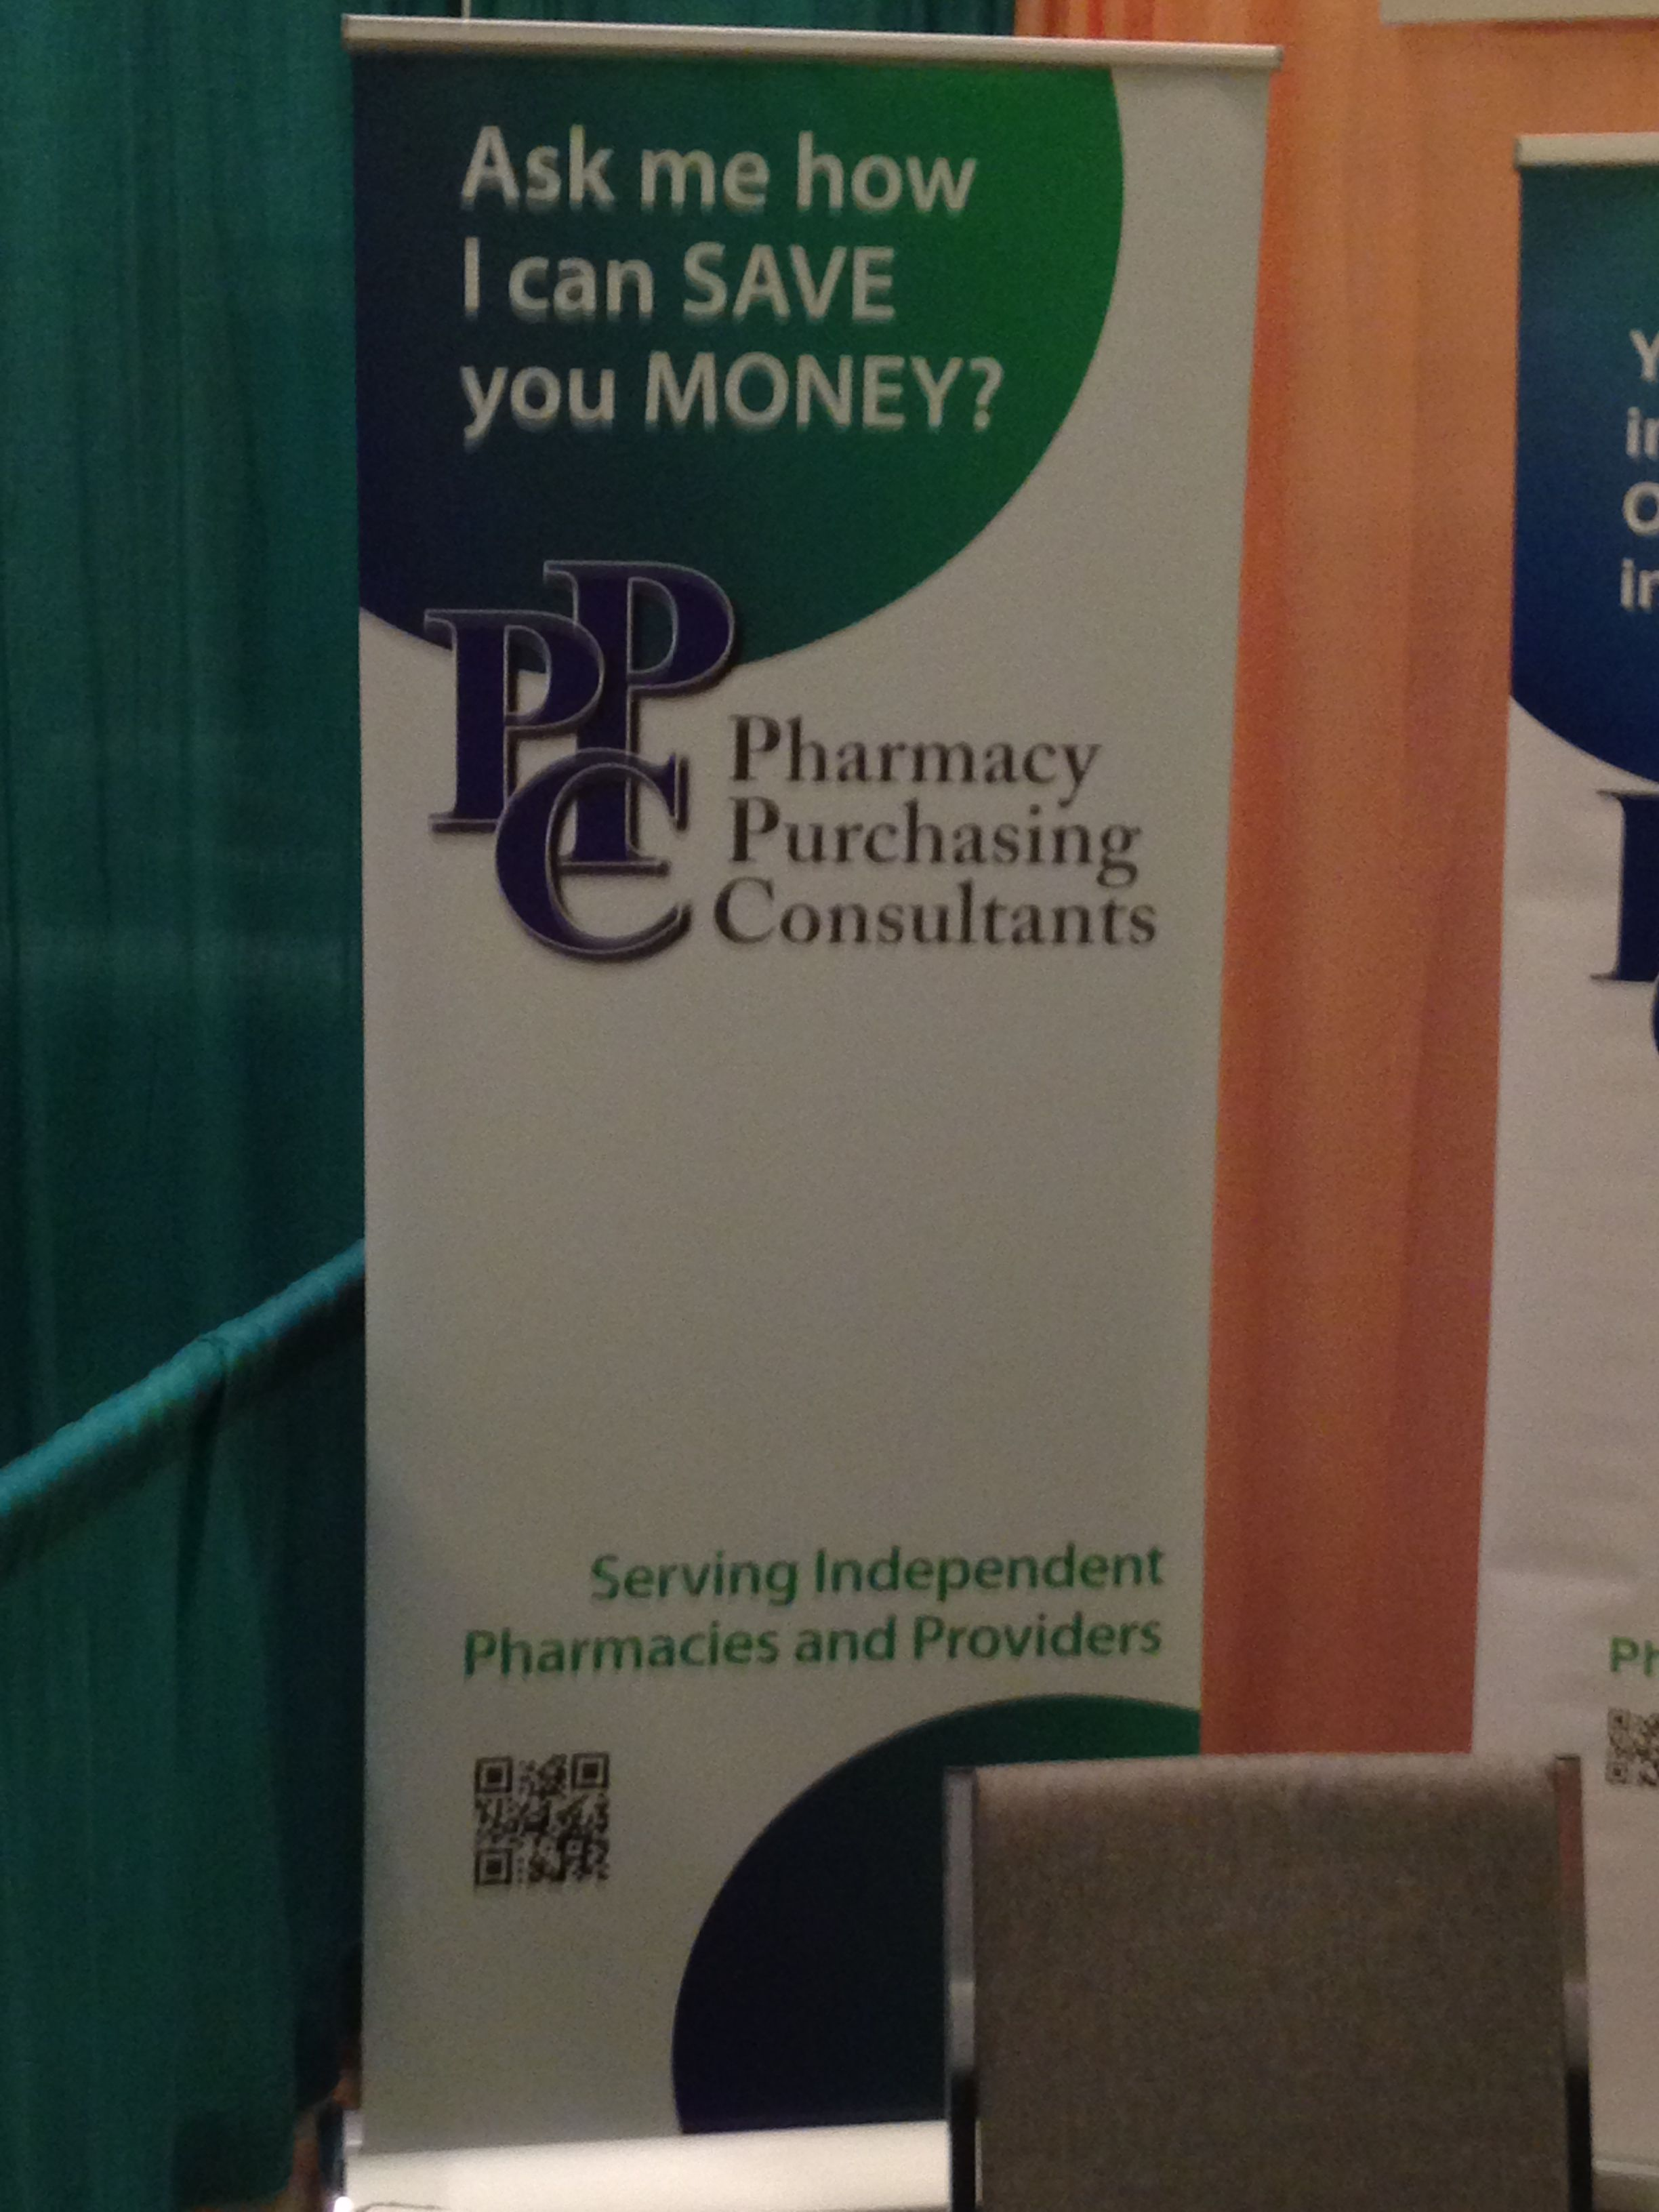 One of our PPC banners. Ask how we can save you money!